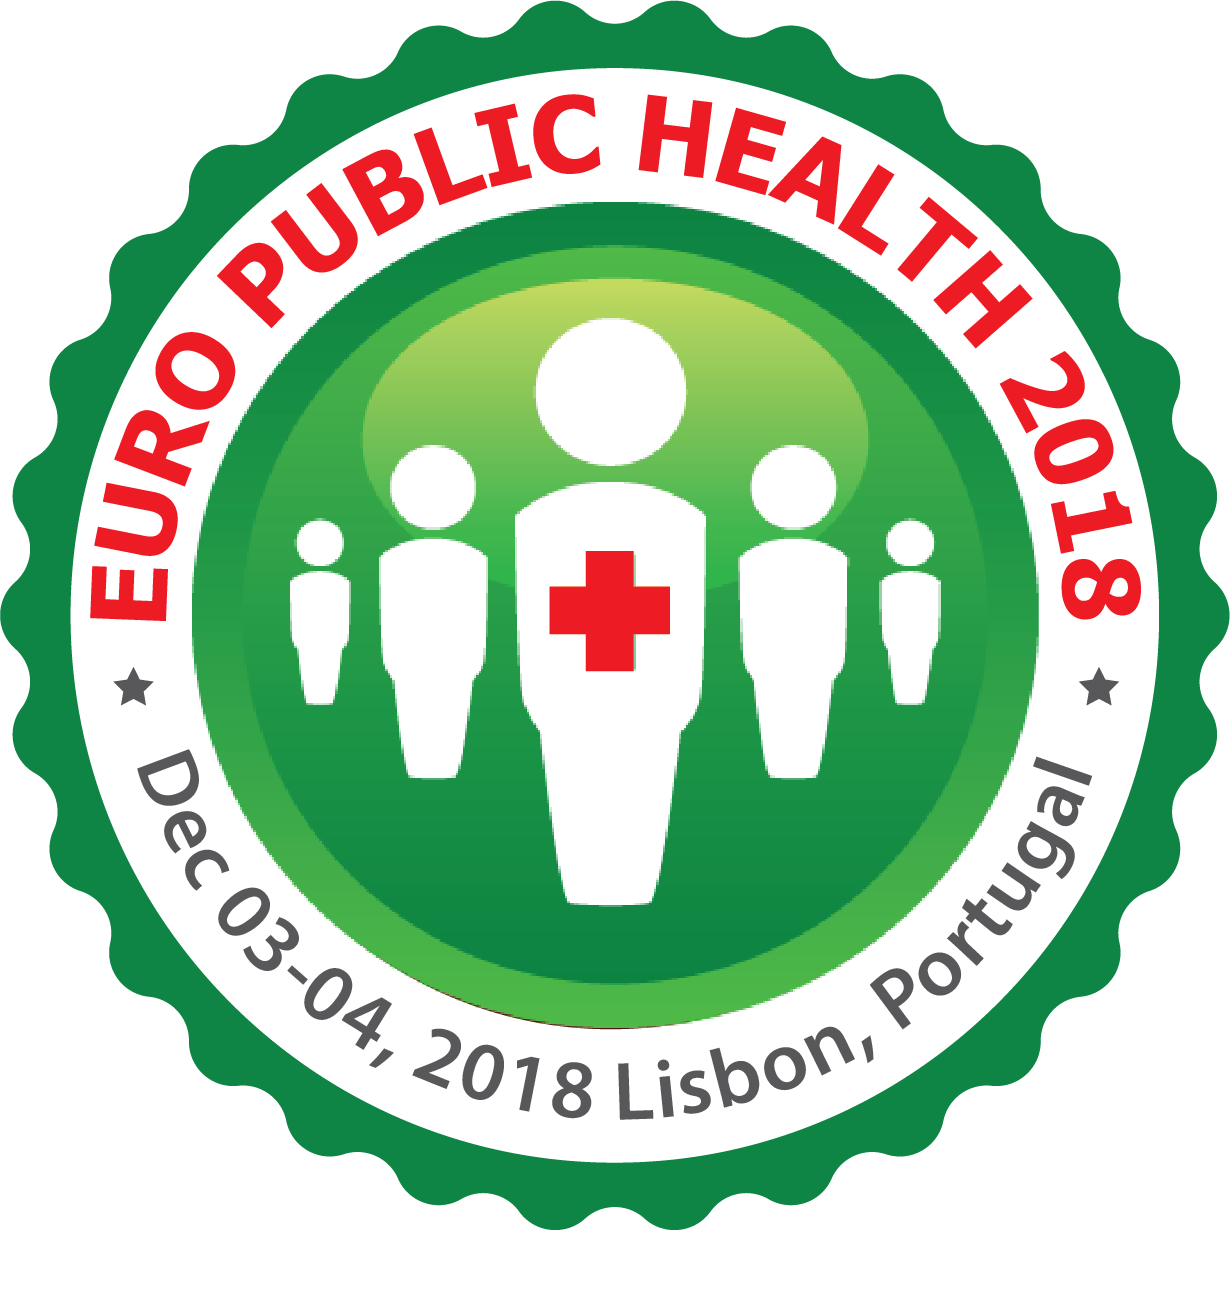 https://epidemiology-publichealth.healthconferences.org/